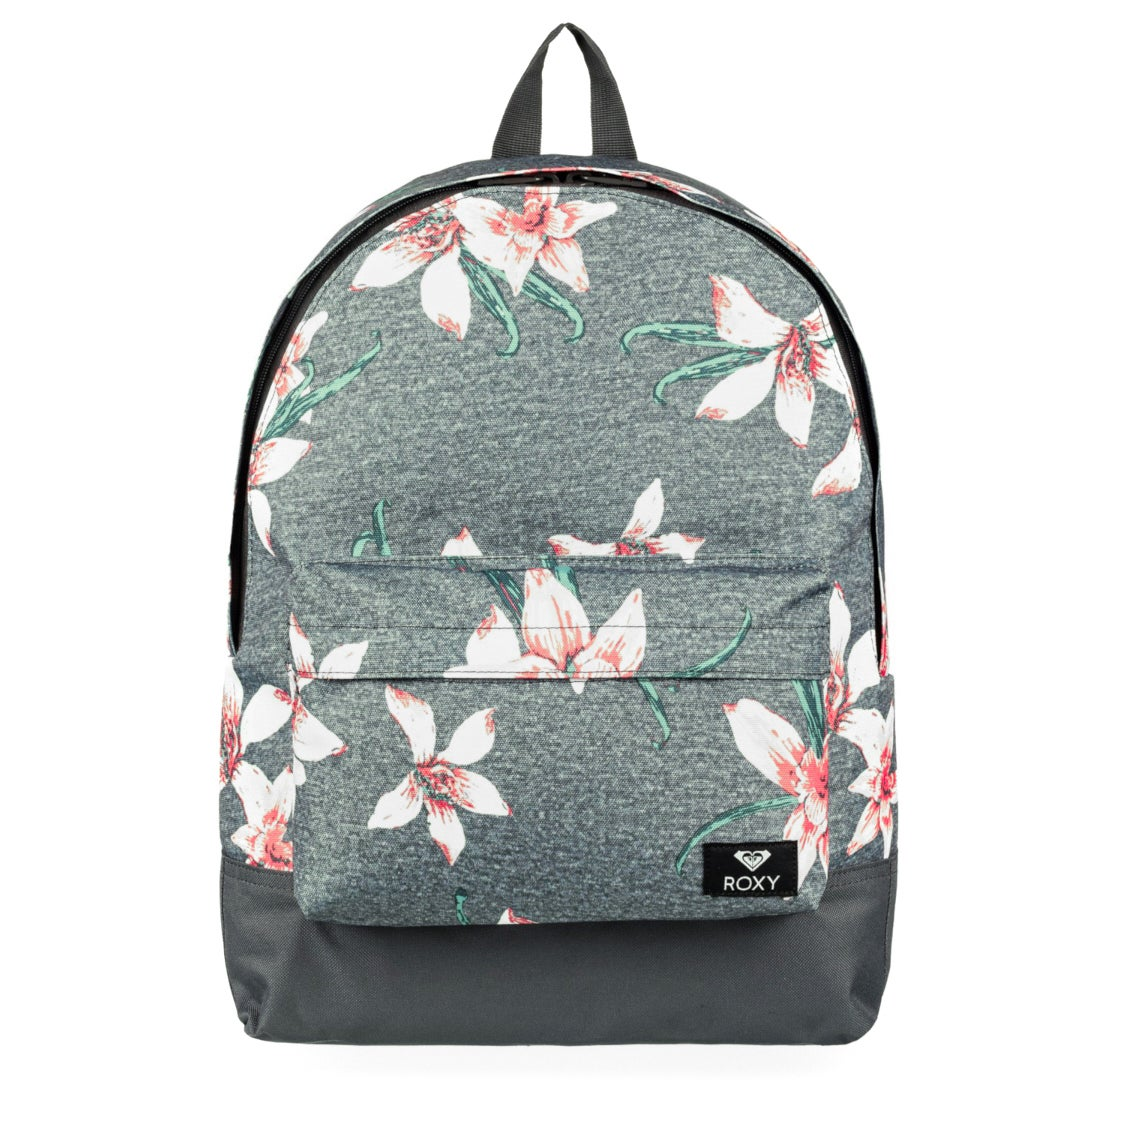 Roxy Sugar Baby Womens Backpack - Charcoal Heather Flower Field